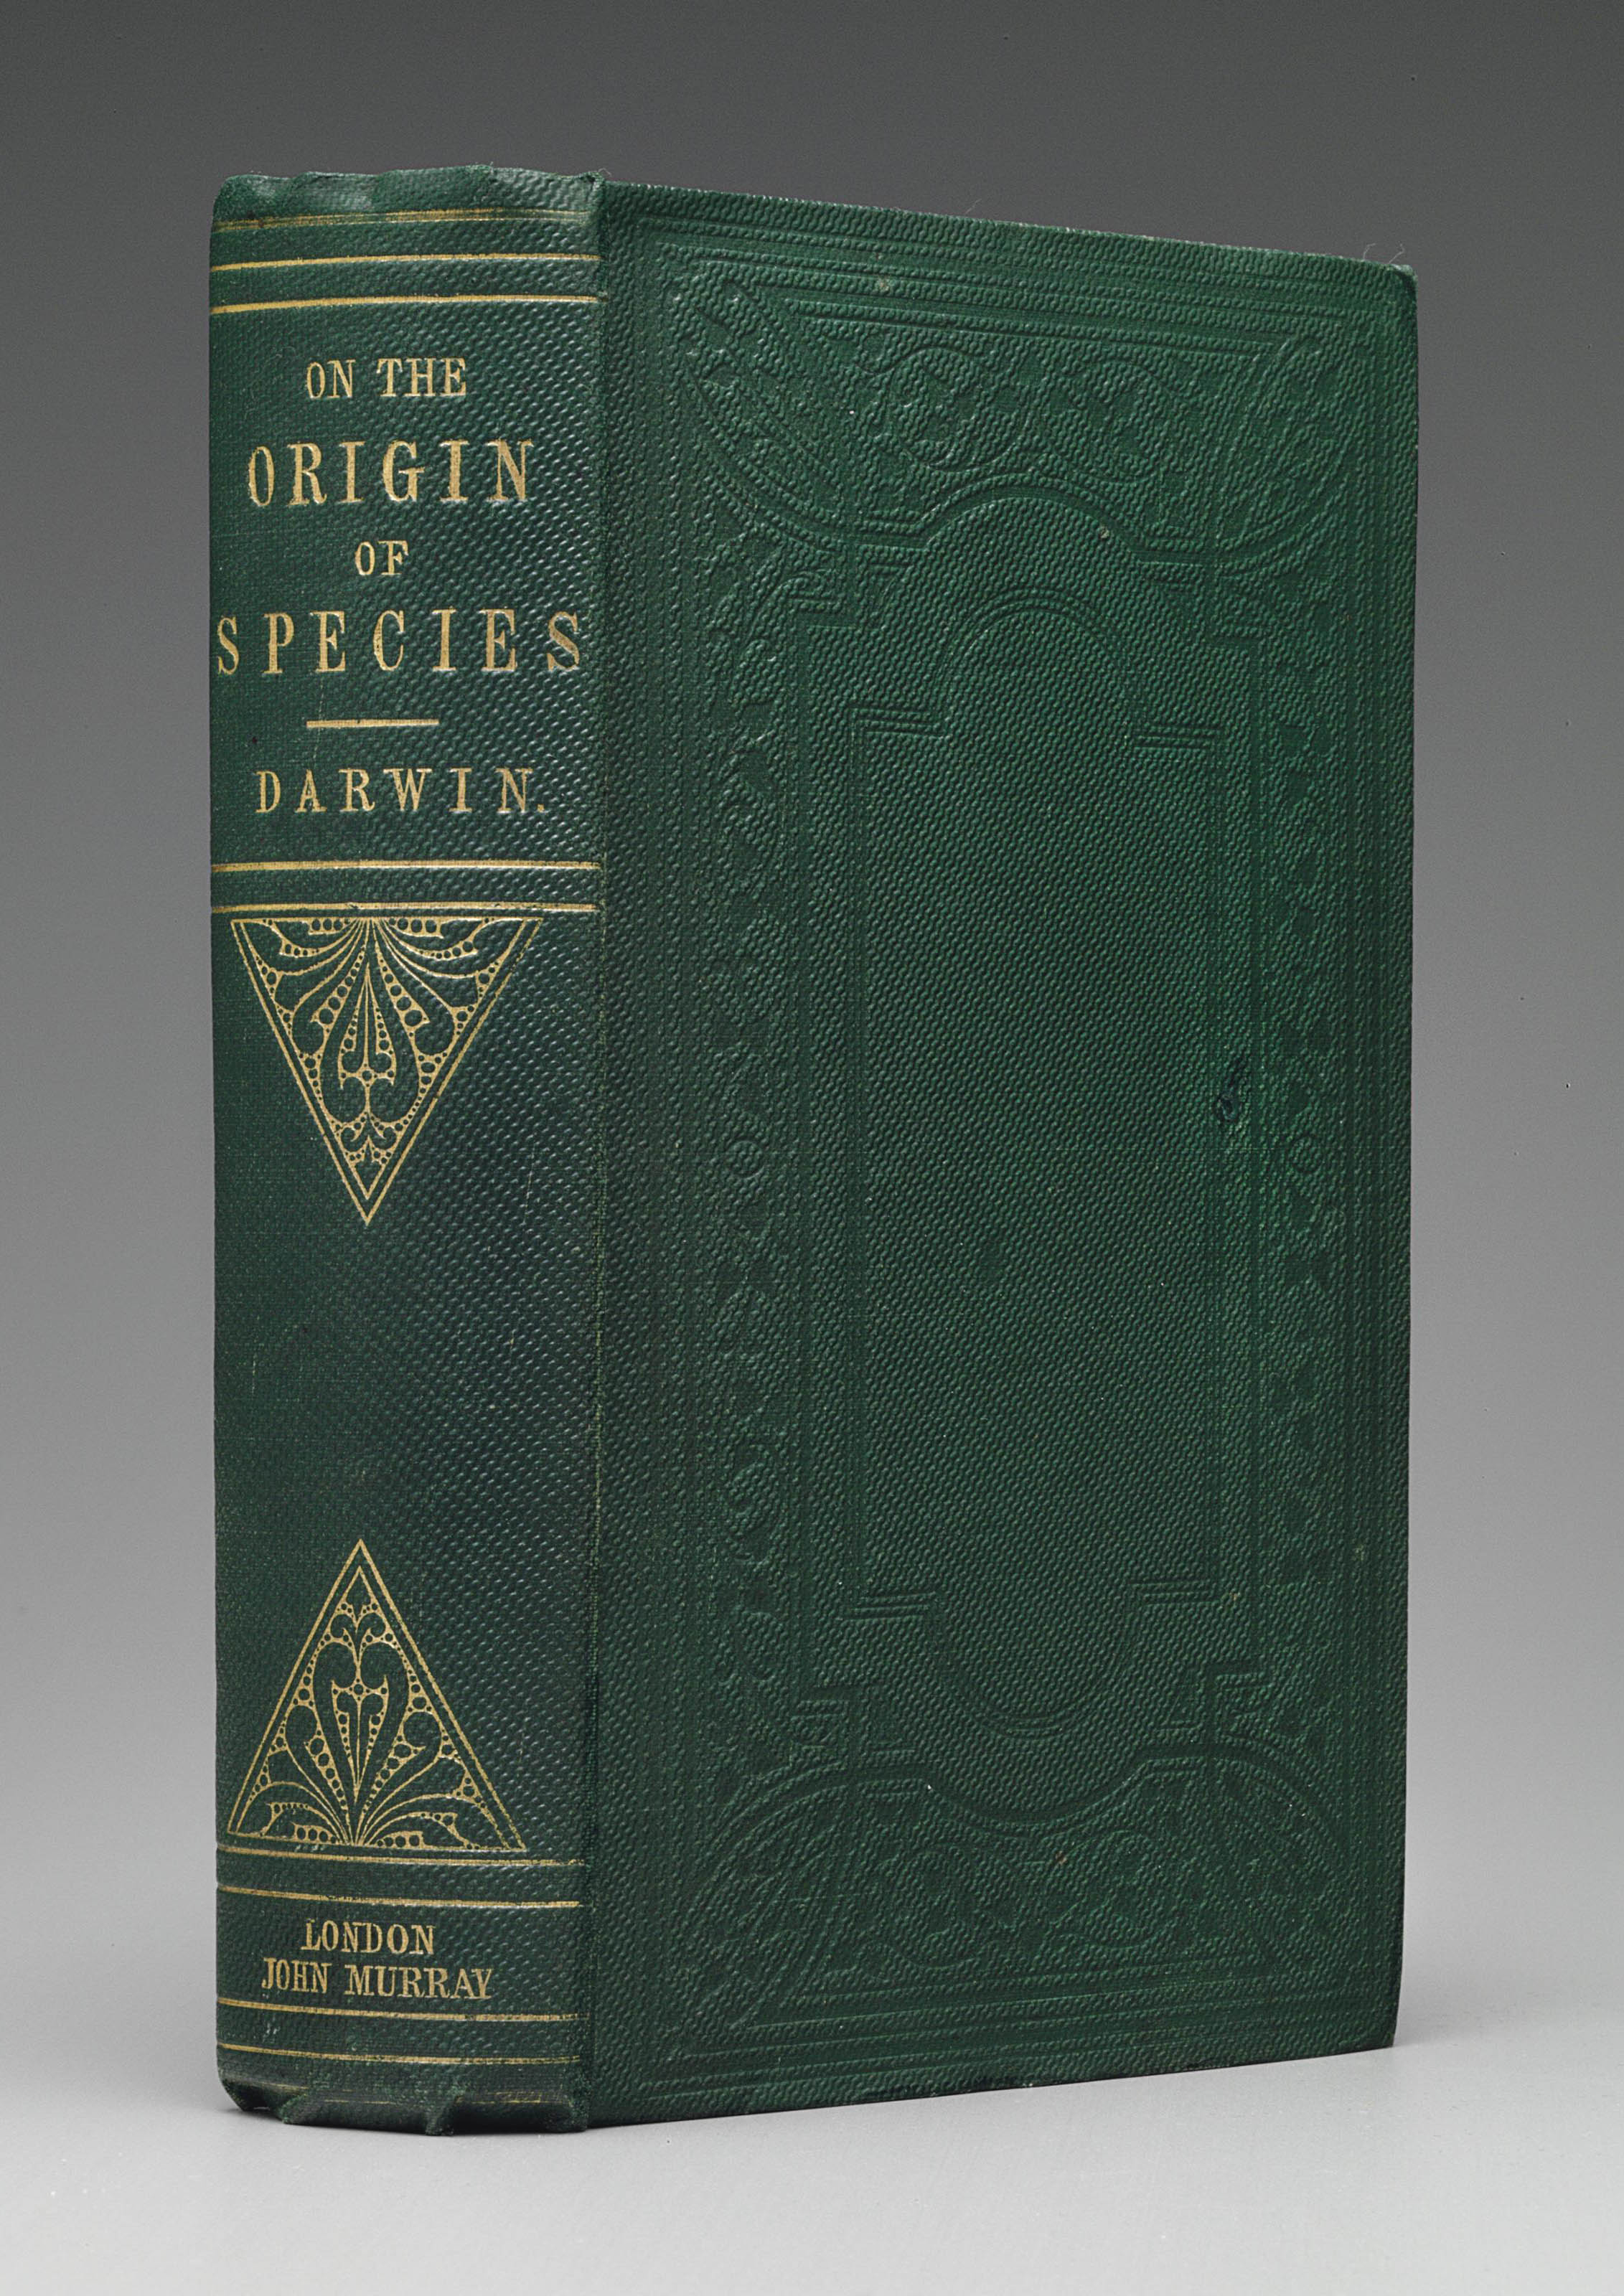 DARWIN, Charles (1809-1882). On the Origin of Species by Means of Natural Selection, or the preservation of favoured races in the struggle for life. London: John Murray, 1859.